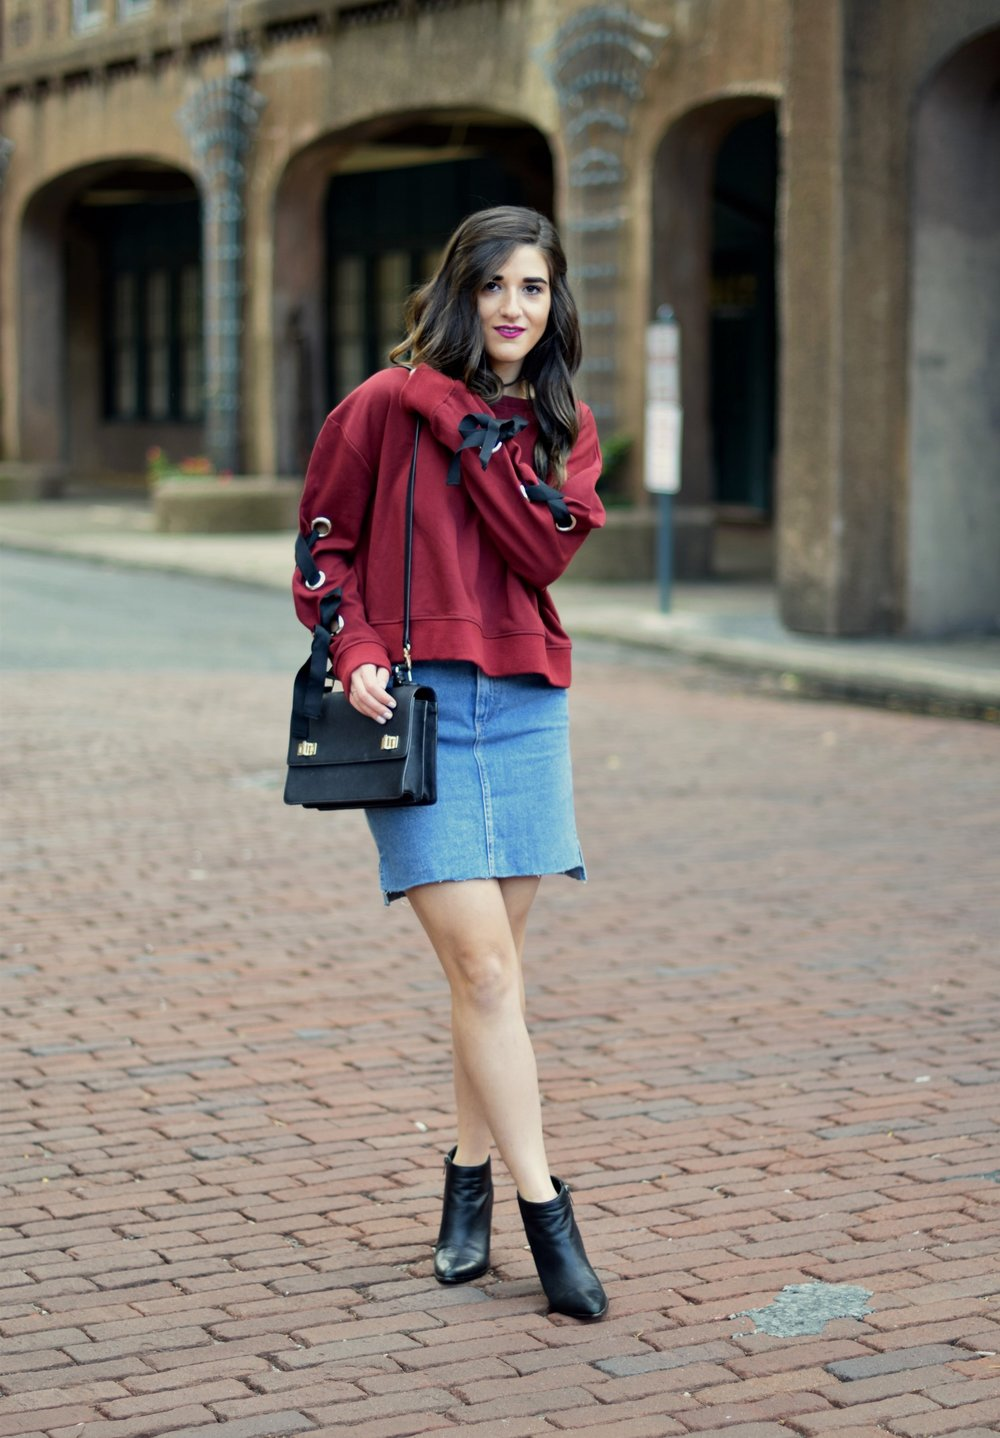 Red Lace-Up Sleeve Sweatshirt Denim Skirt 10 Things I'm Thankful For This Year Esther Santer Fashion Blog NYC Street Style Blogger Outfit OOTD Trendy Girl Women Choker Black Booties Hair Brunette Henri  Bendel West 57th Schoolbag Winter Look Fall Shop.jpg